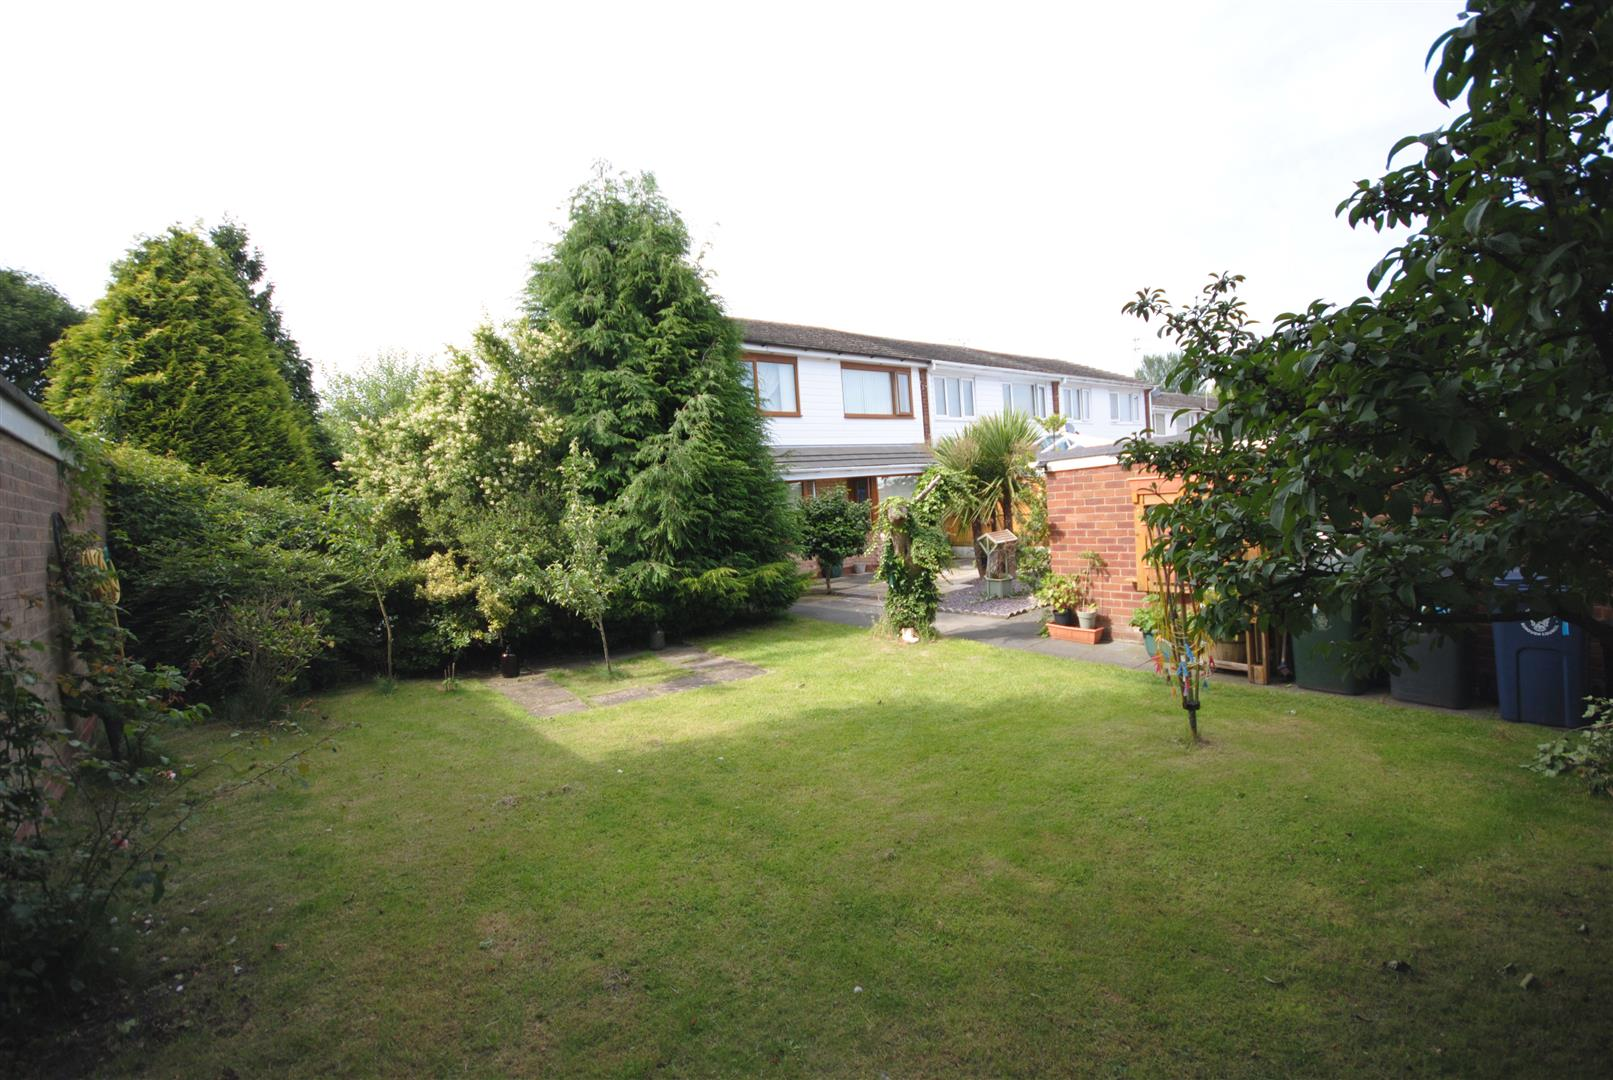 3 Bedrooms Semi Detached House for sale in Millbrook Close, Skelmersdale